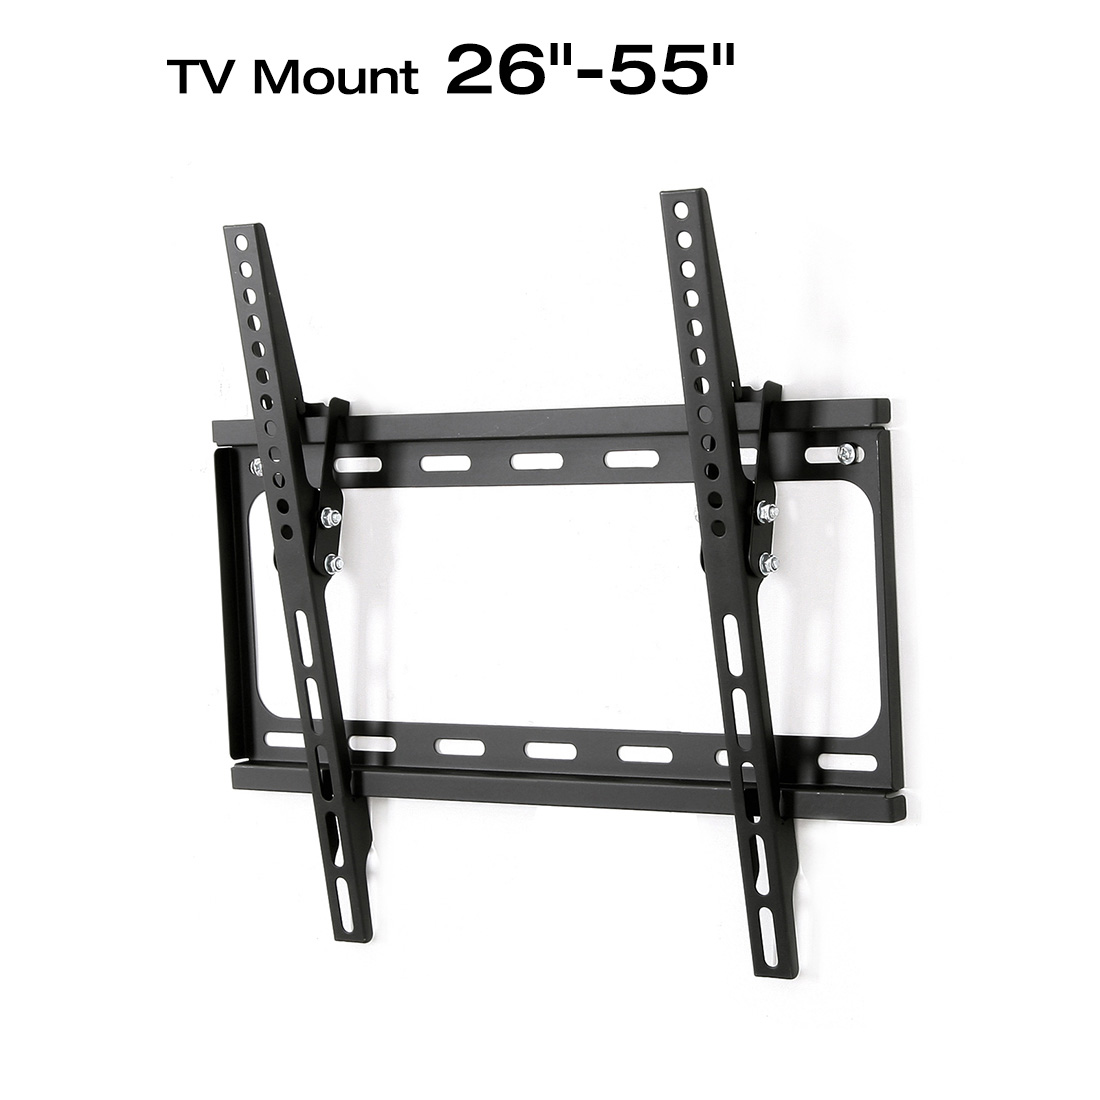 Loctek T1S Tilt Flat Panel Wall Mount Bracket for 26-55 TV, Universal Hole Pattern